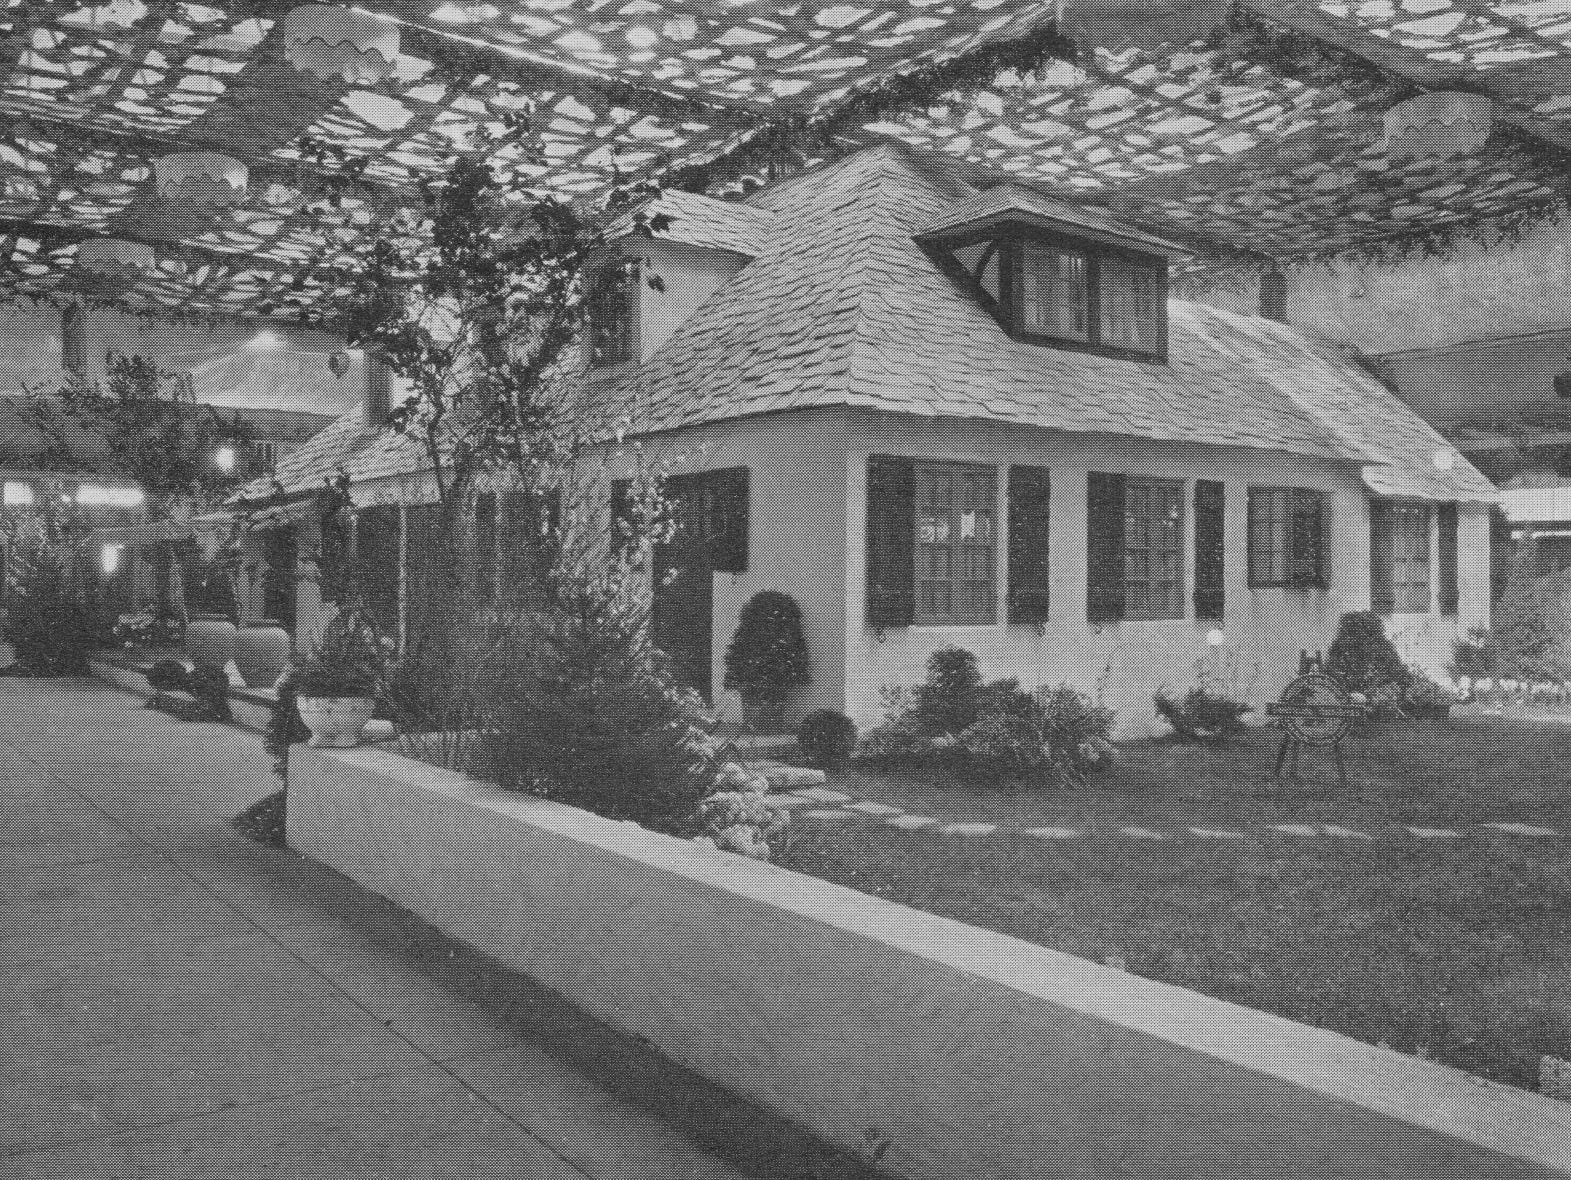 This French Chateau was the 1925 centerpiece home at Indianapolis Home Complete Exposition at the Indiana State Fairgrounds.